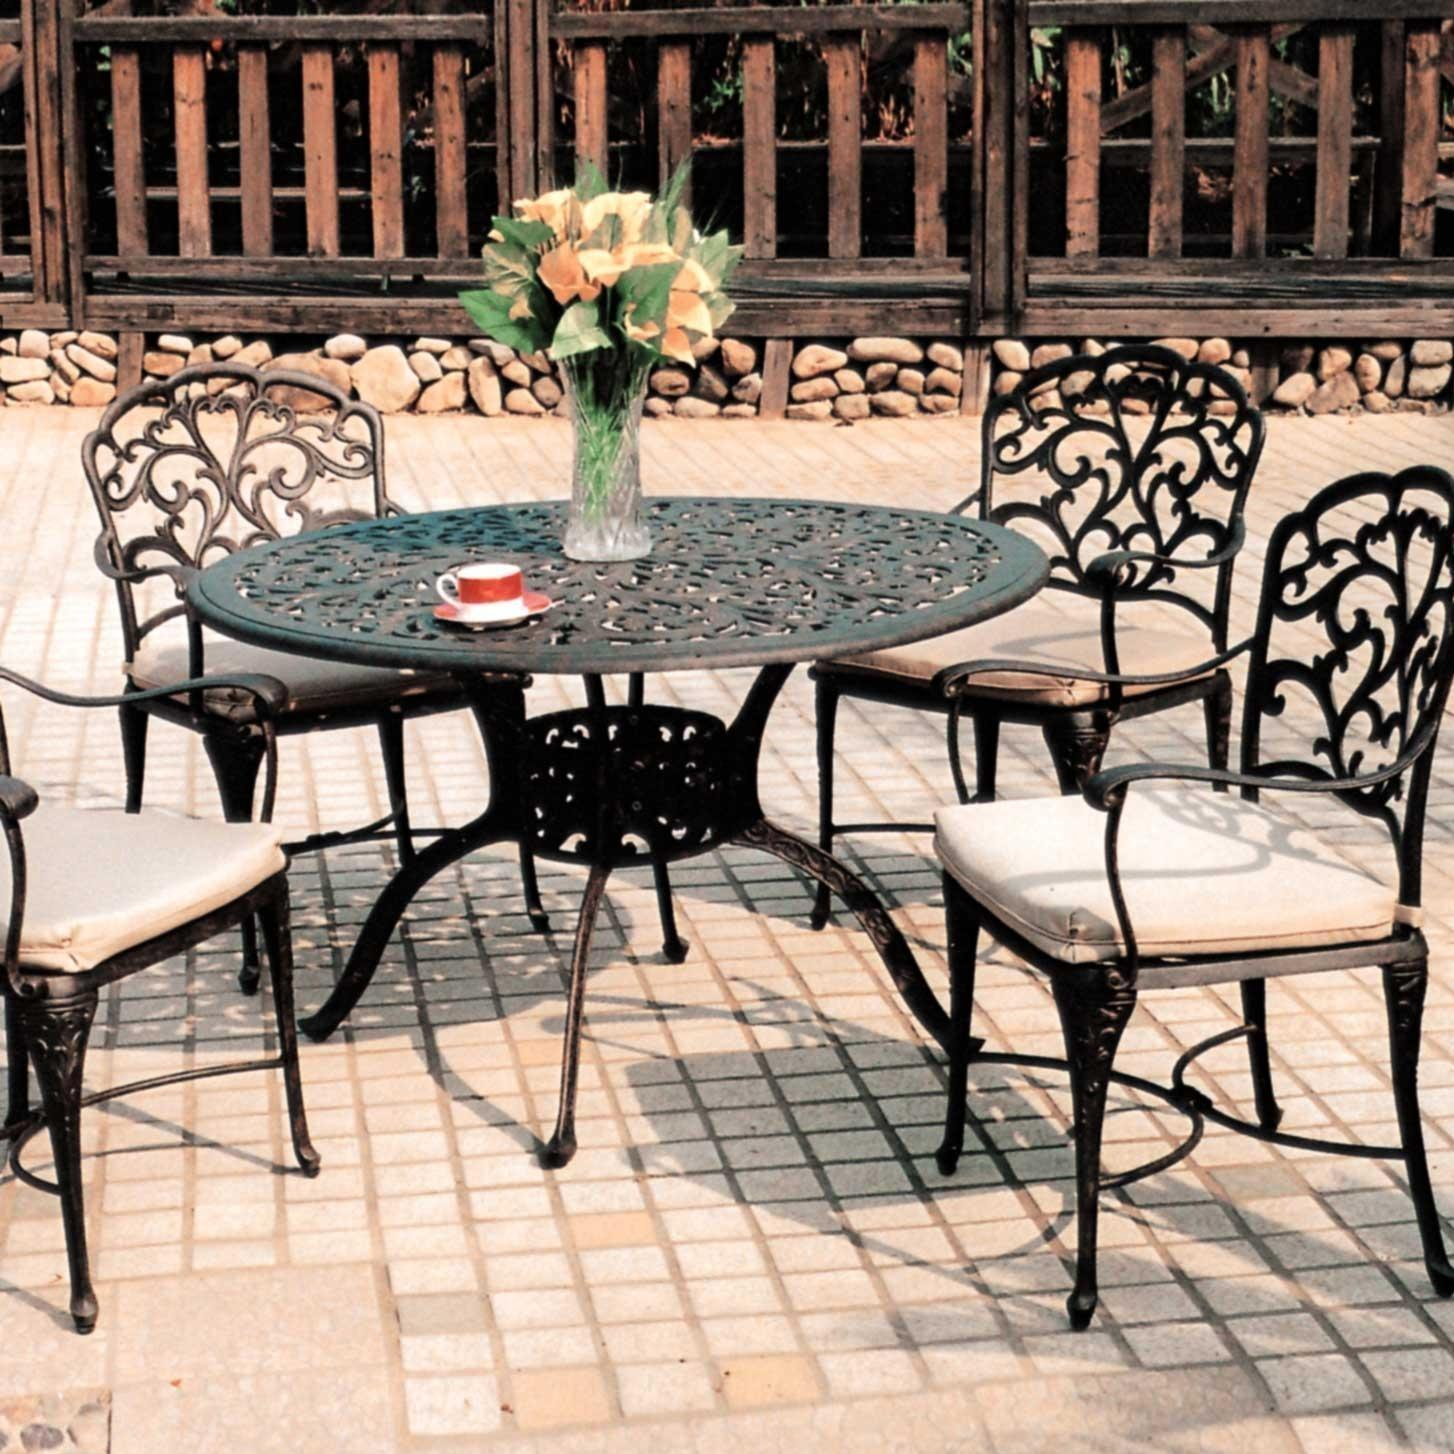 Darlee catalina 4 person cast aluminum patio dining set for Outdoor dining sets for 4